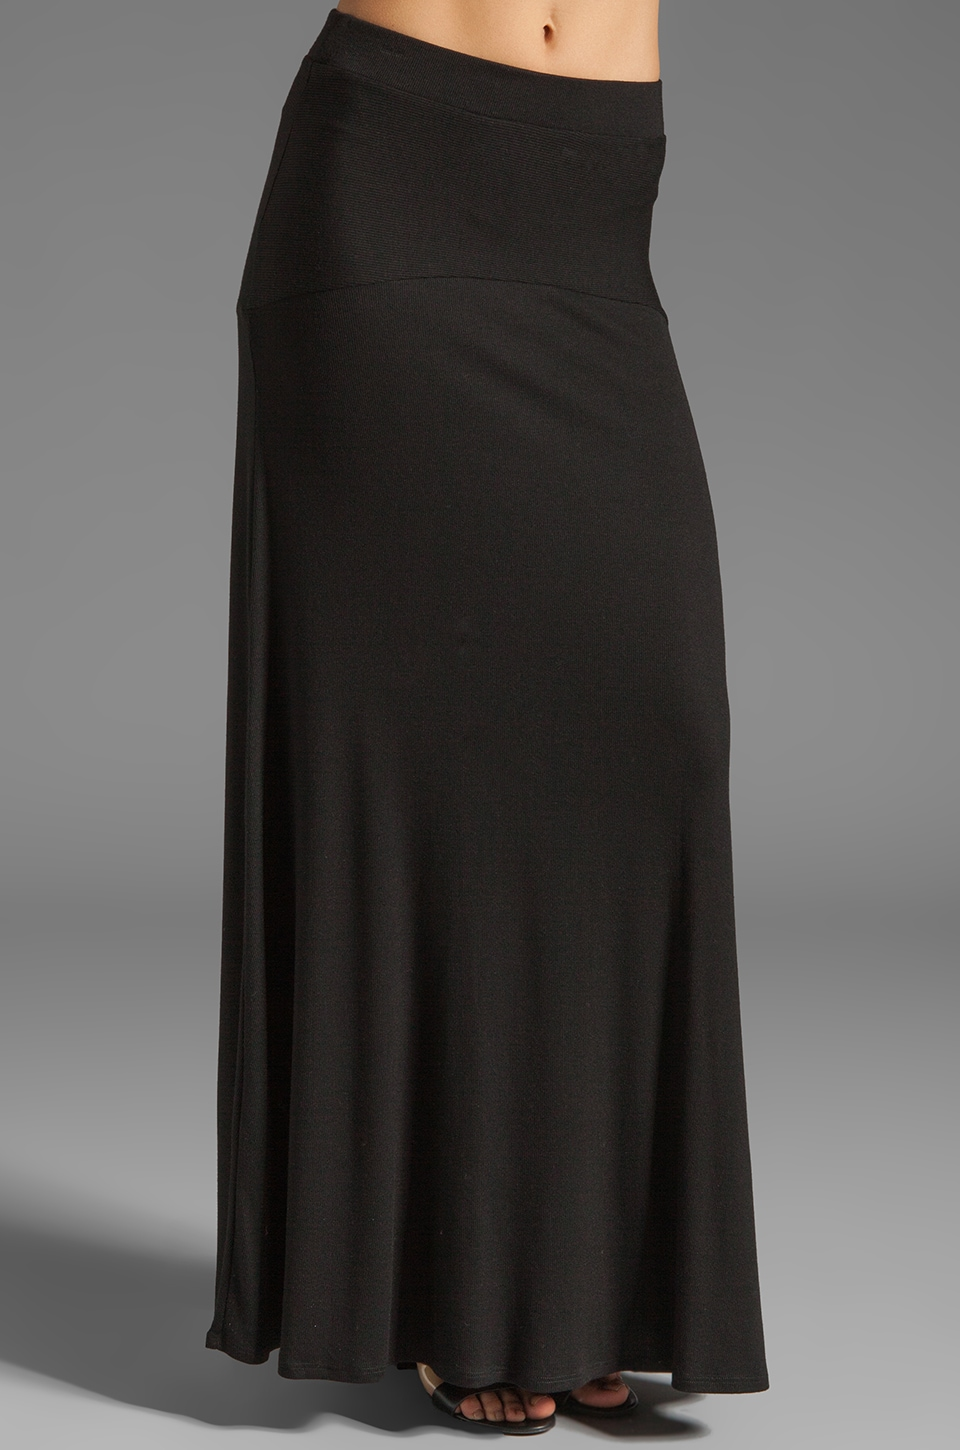 Heather Trumpet Maxi Skirt in Black